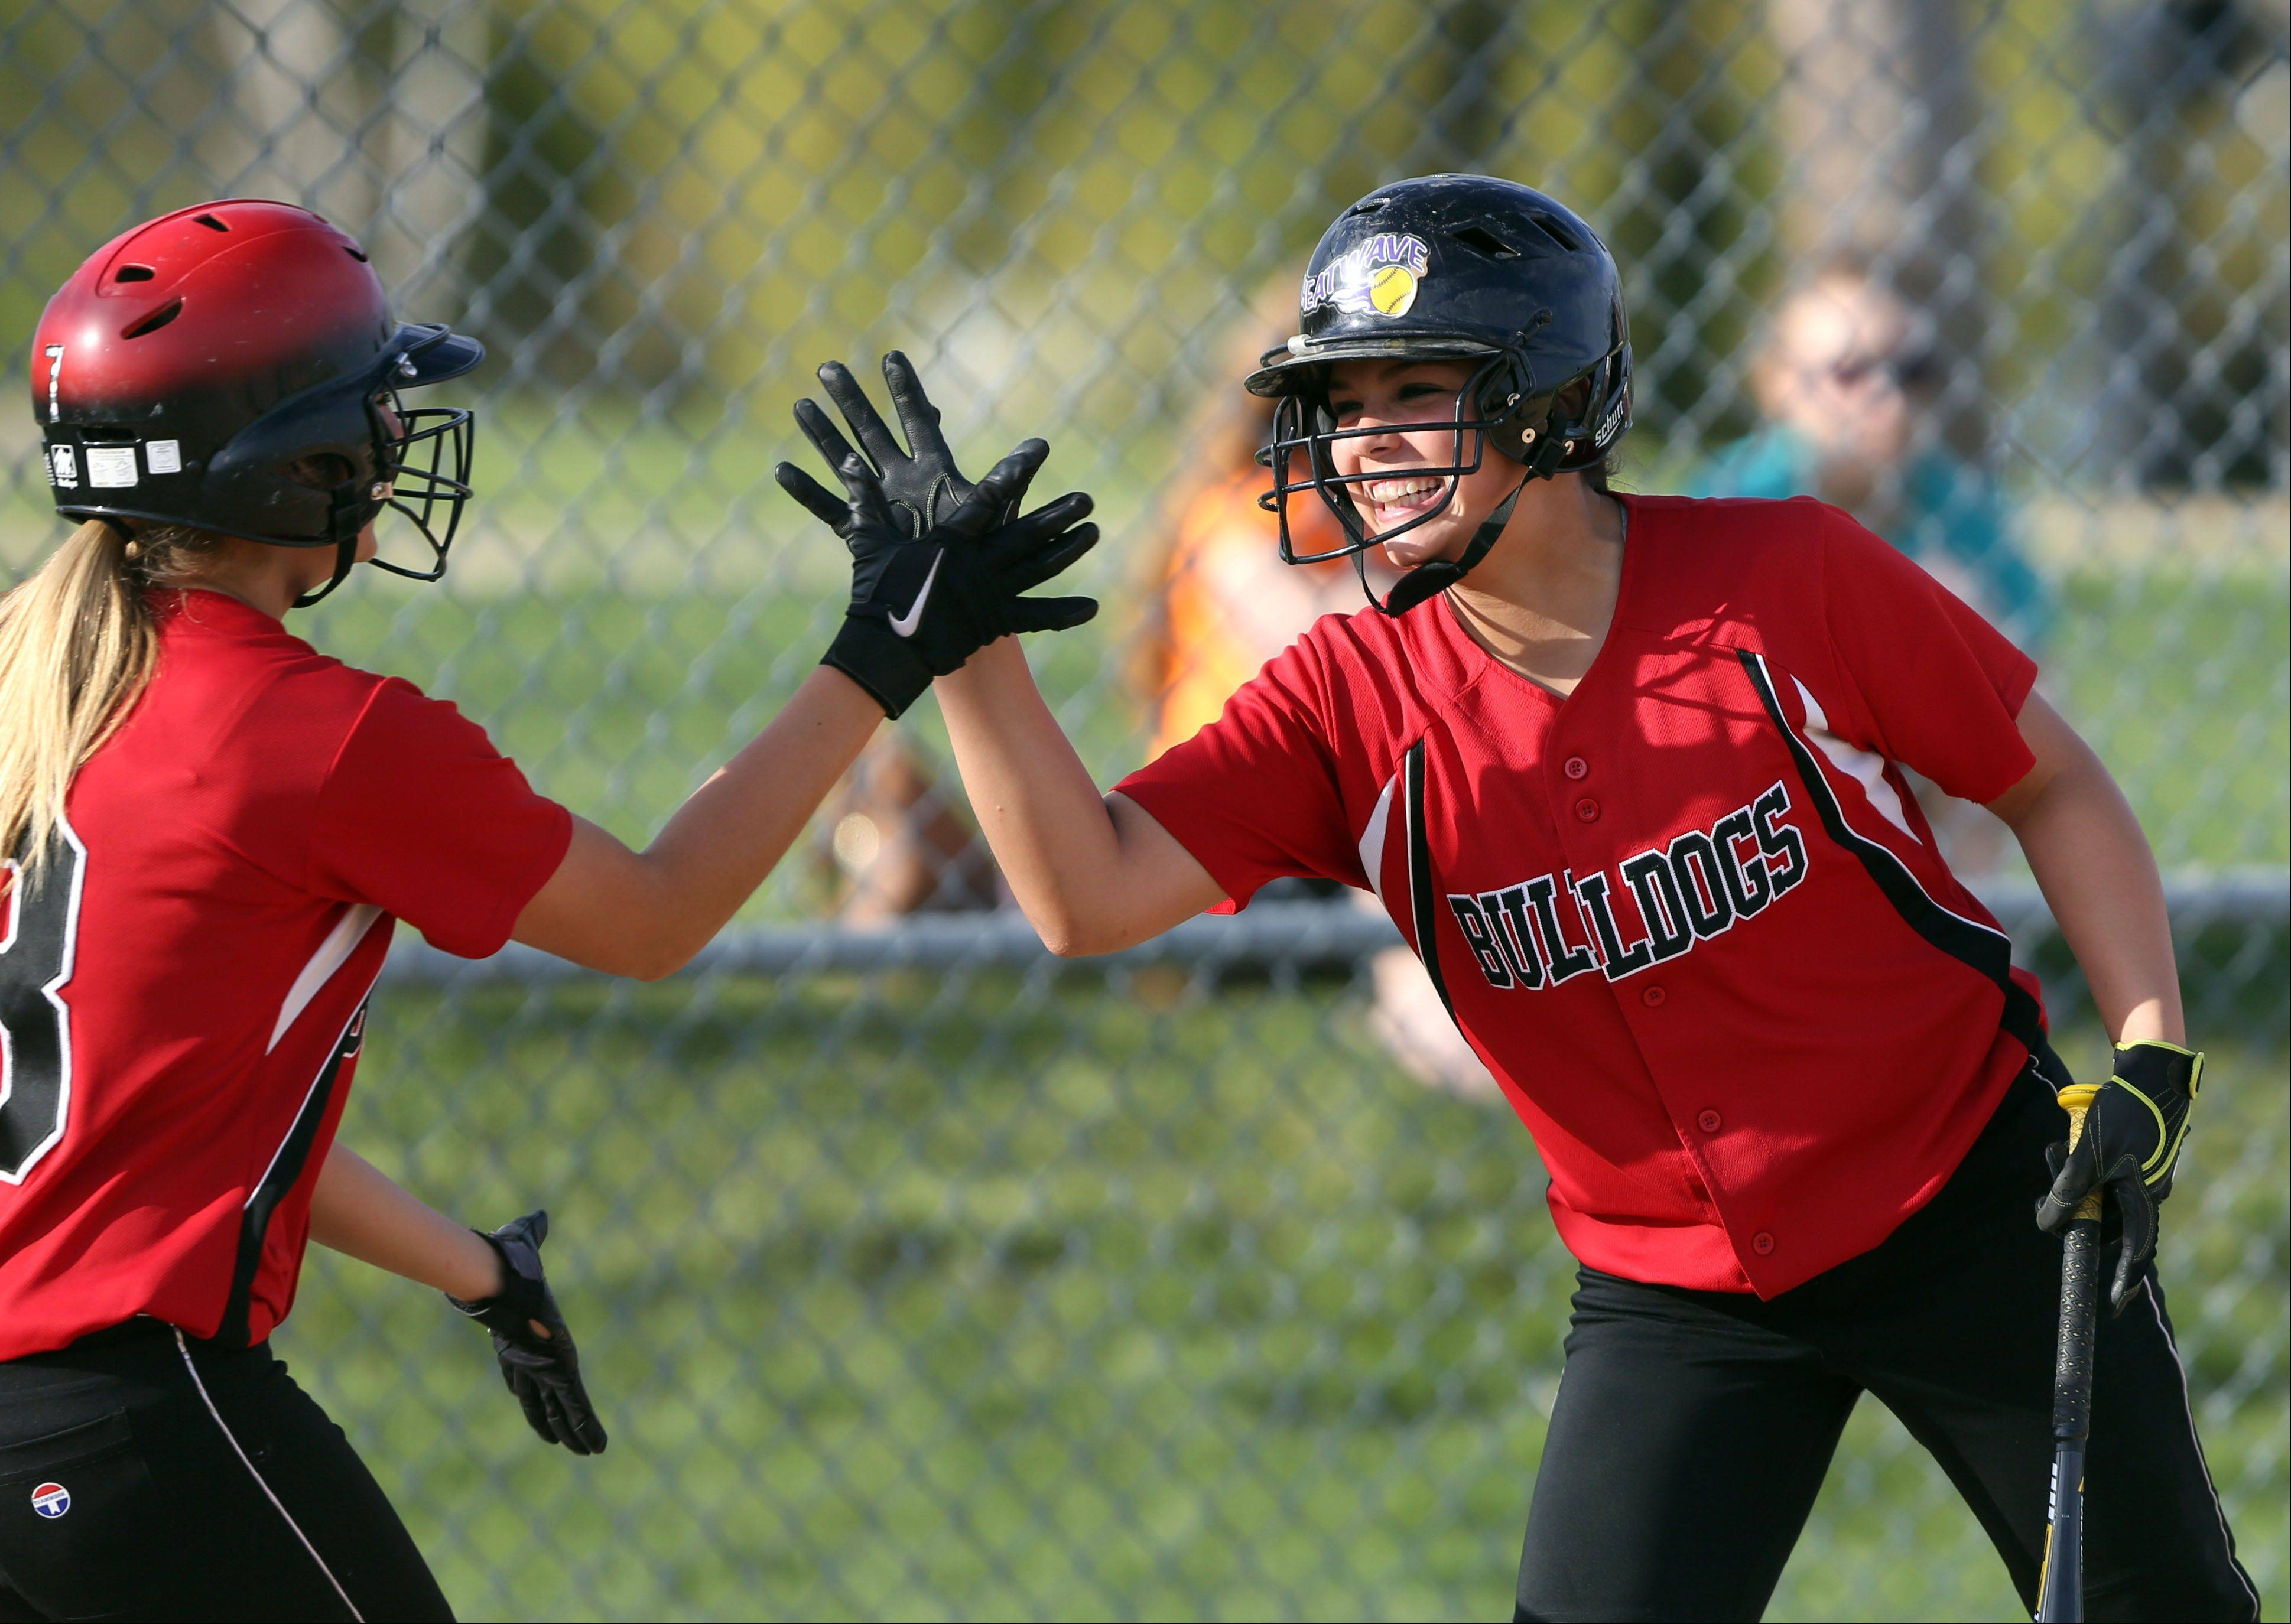 Grant's Kaitlyn Wold, left, high-fives Kayla Uhwat after scoring in the fifth inning during the NSC championship game at Zion-Benton on Wednesday.